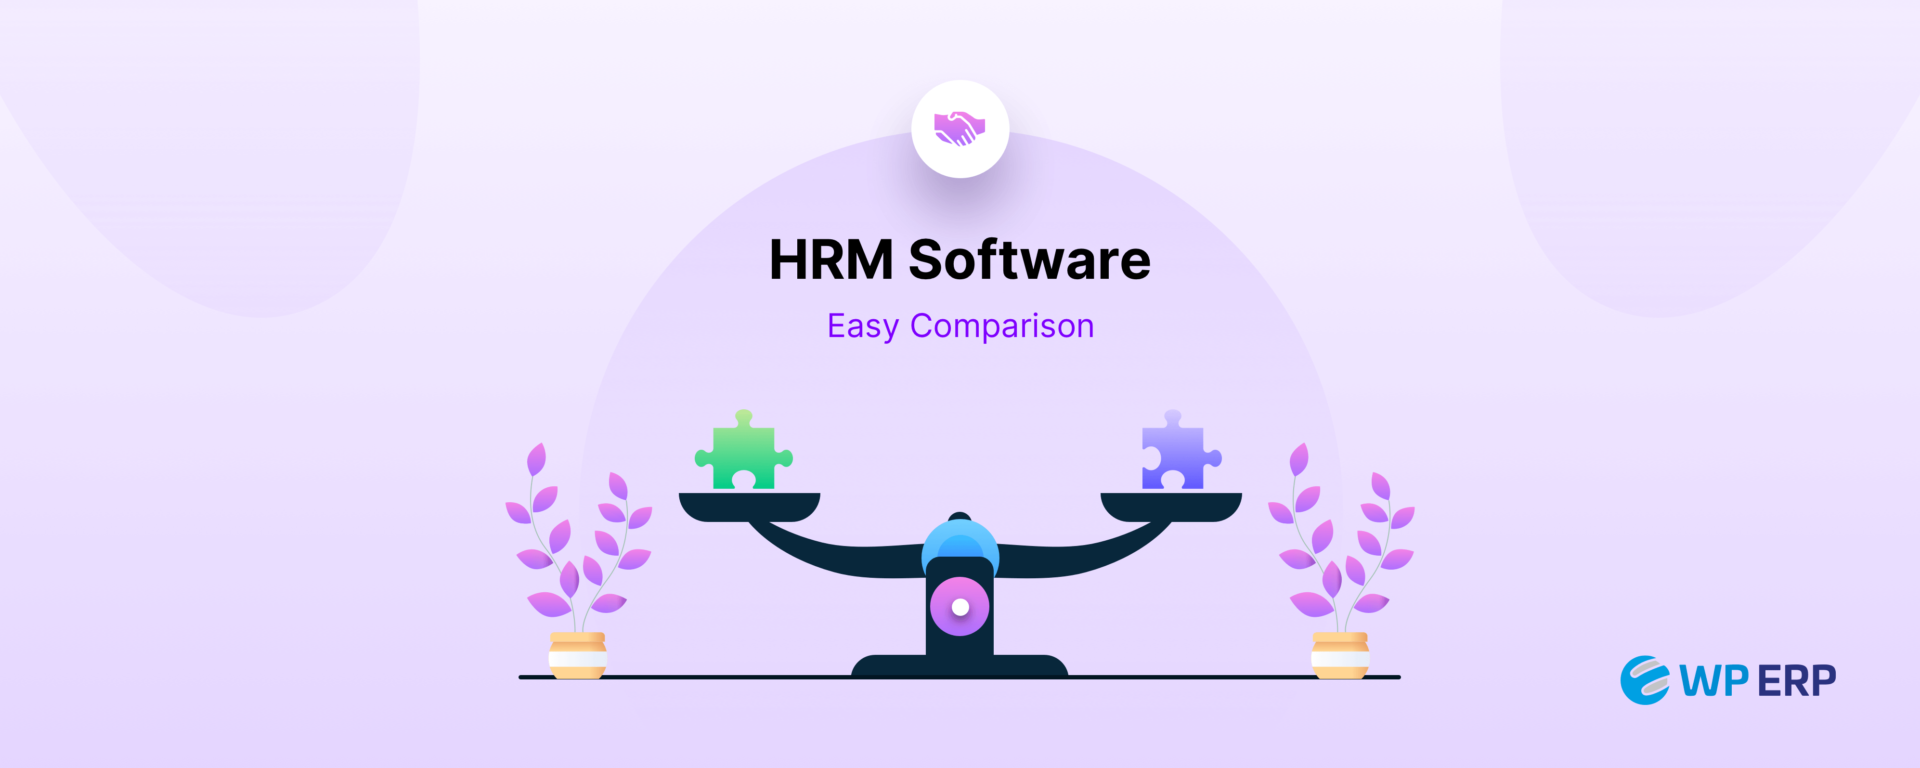 Top Open-Source HRM Software - An Easy Comparison